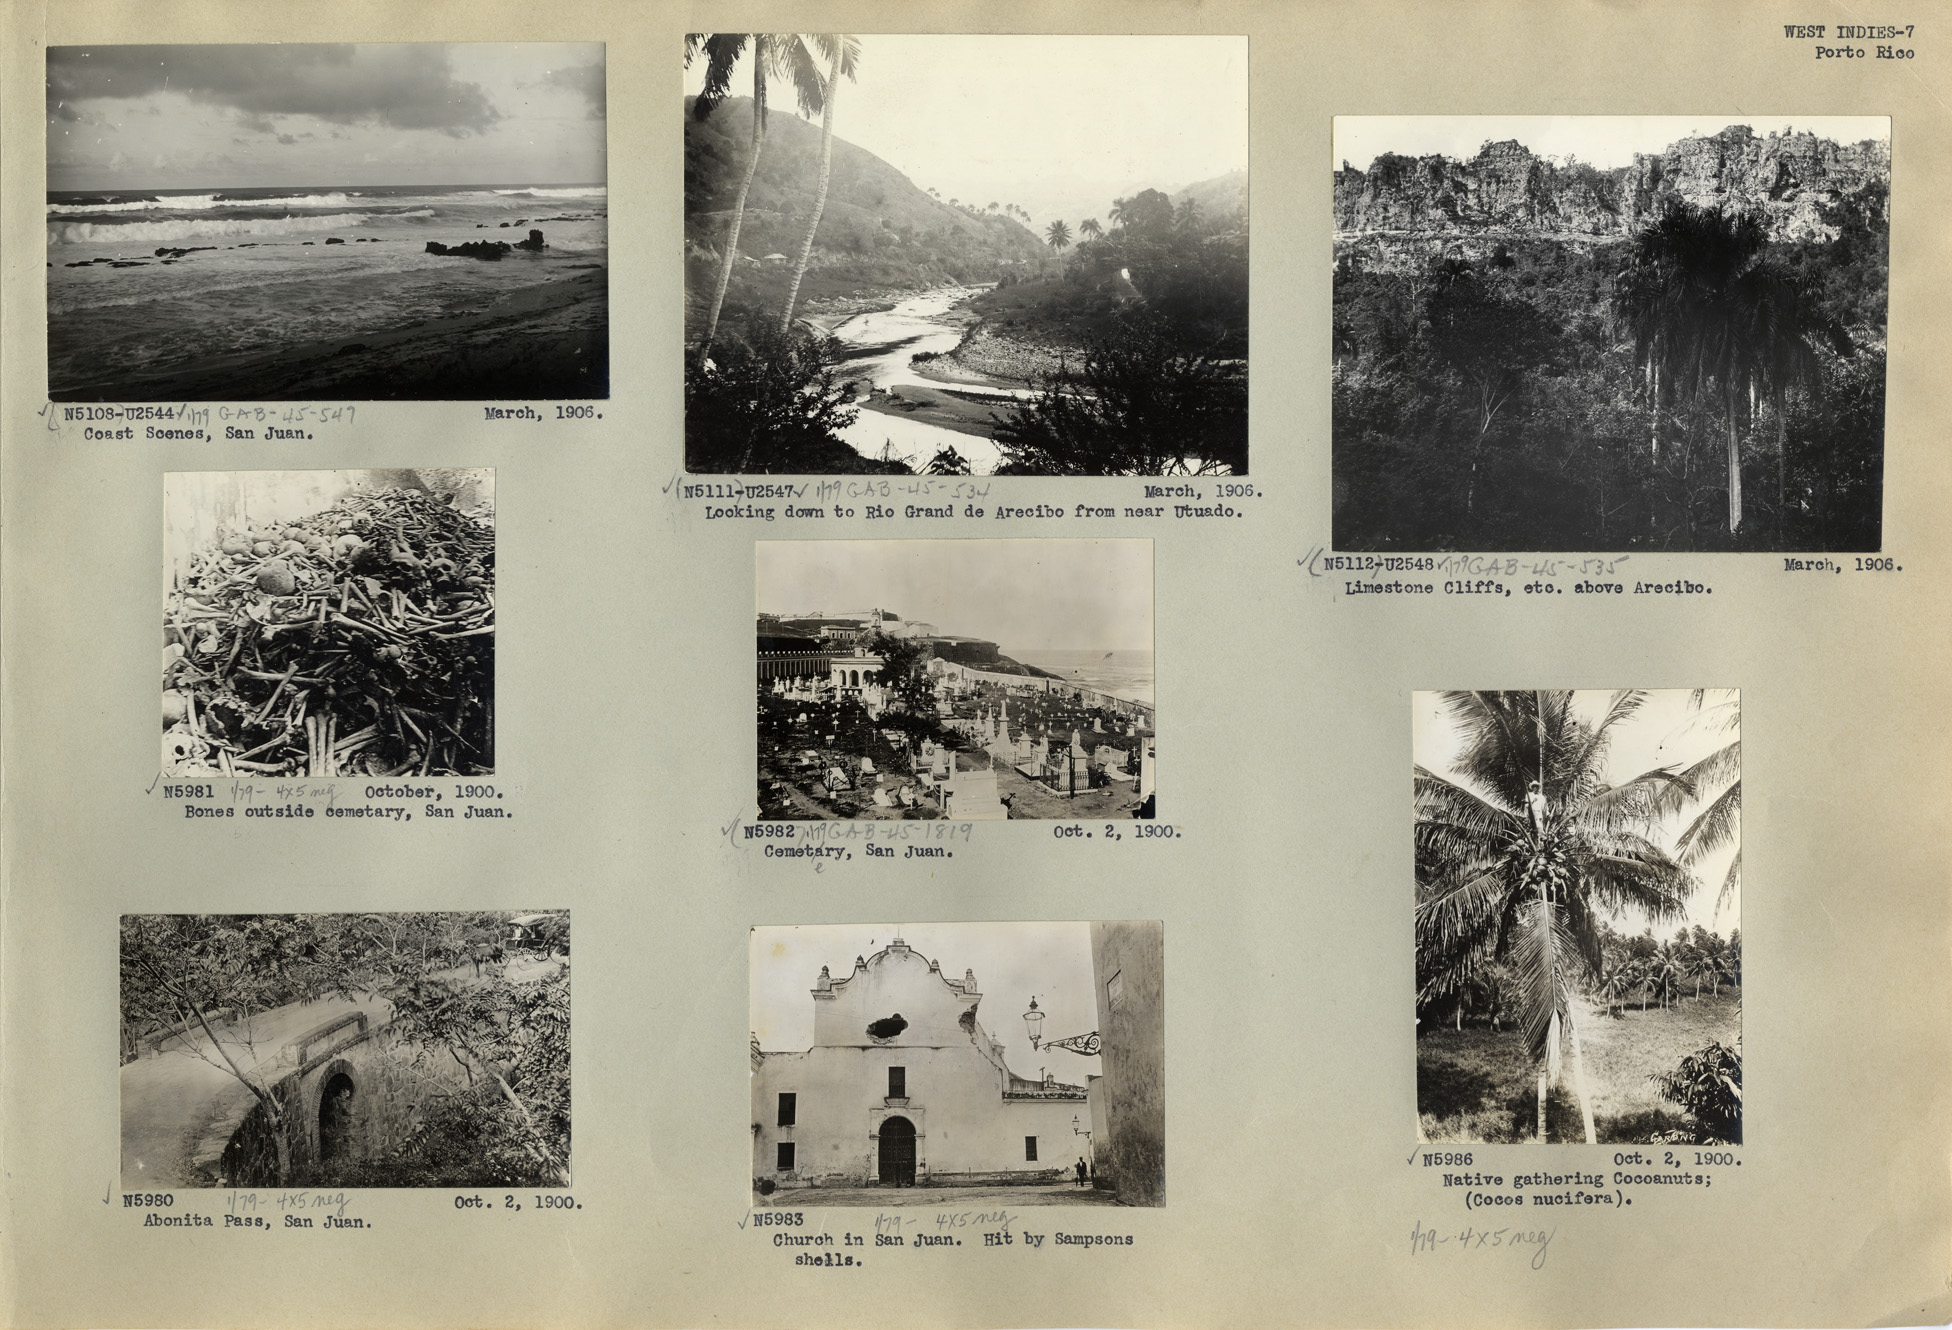 West Indies Photograph Album page by N. L. Britton and E. G. Britton.